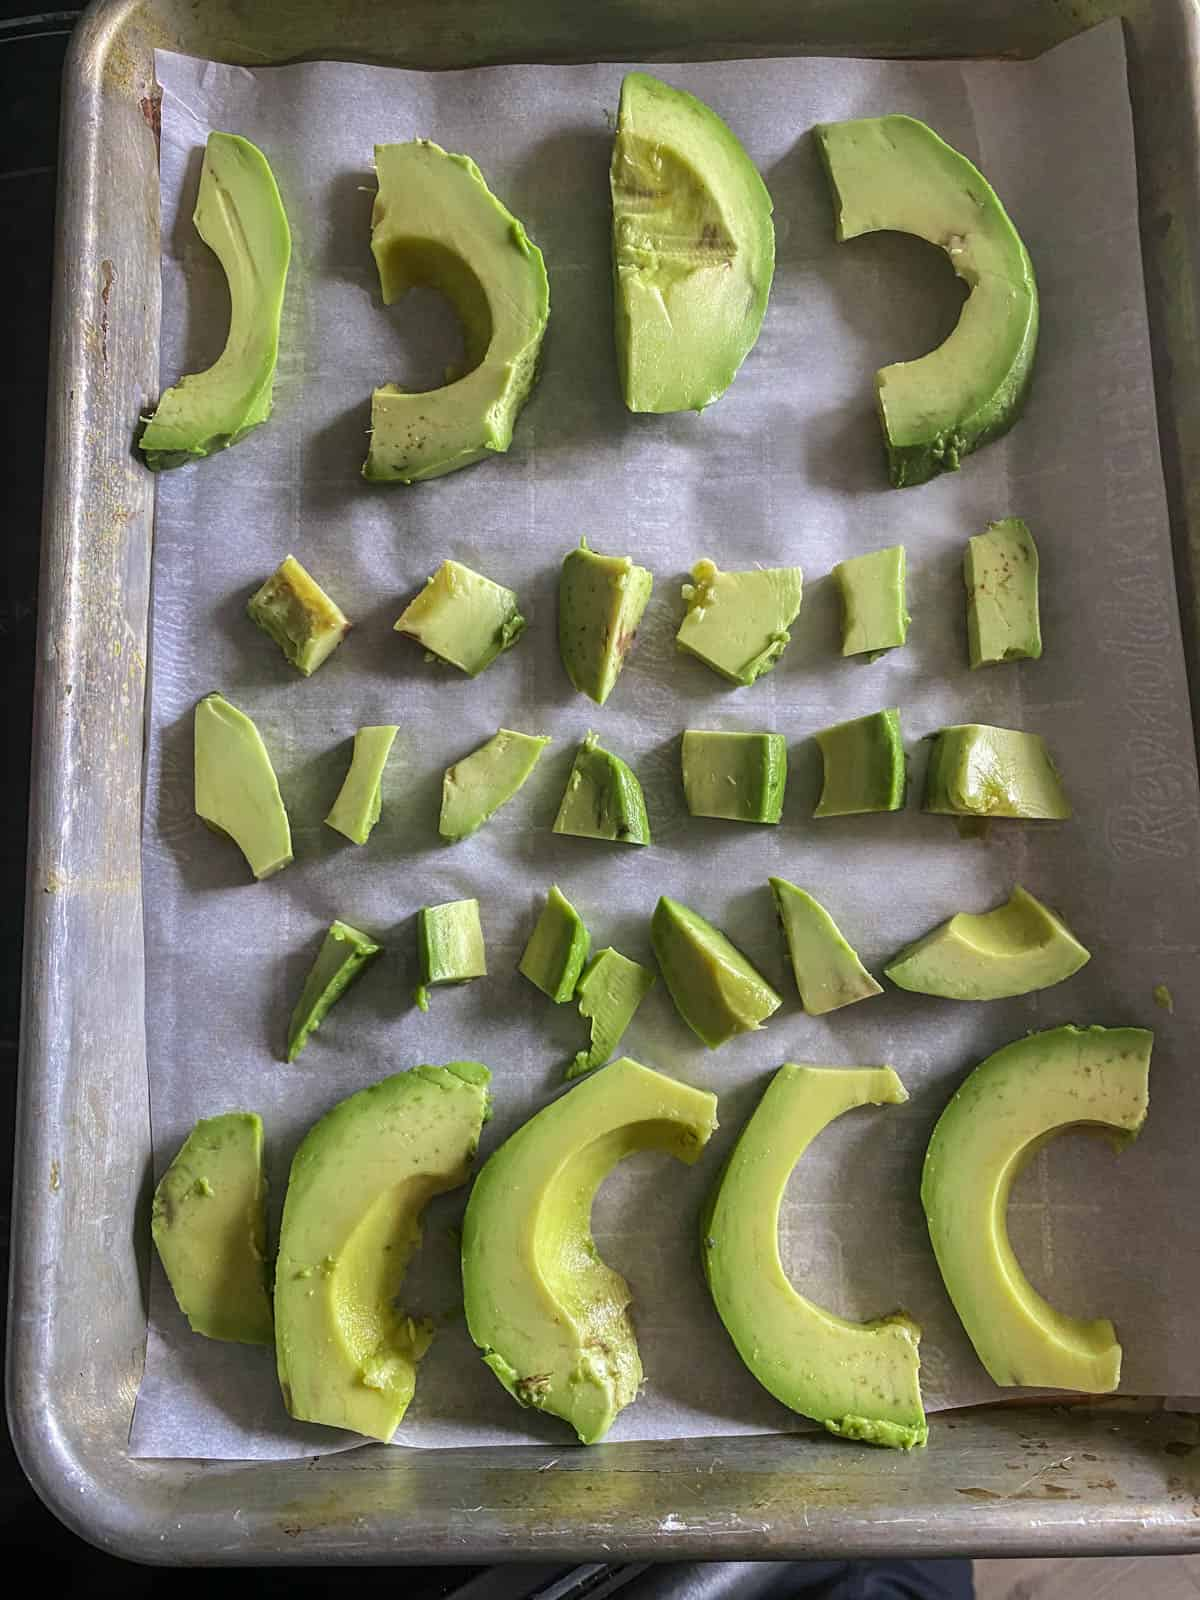 Baking sheet with slices and cubes of avocado